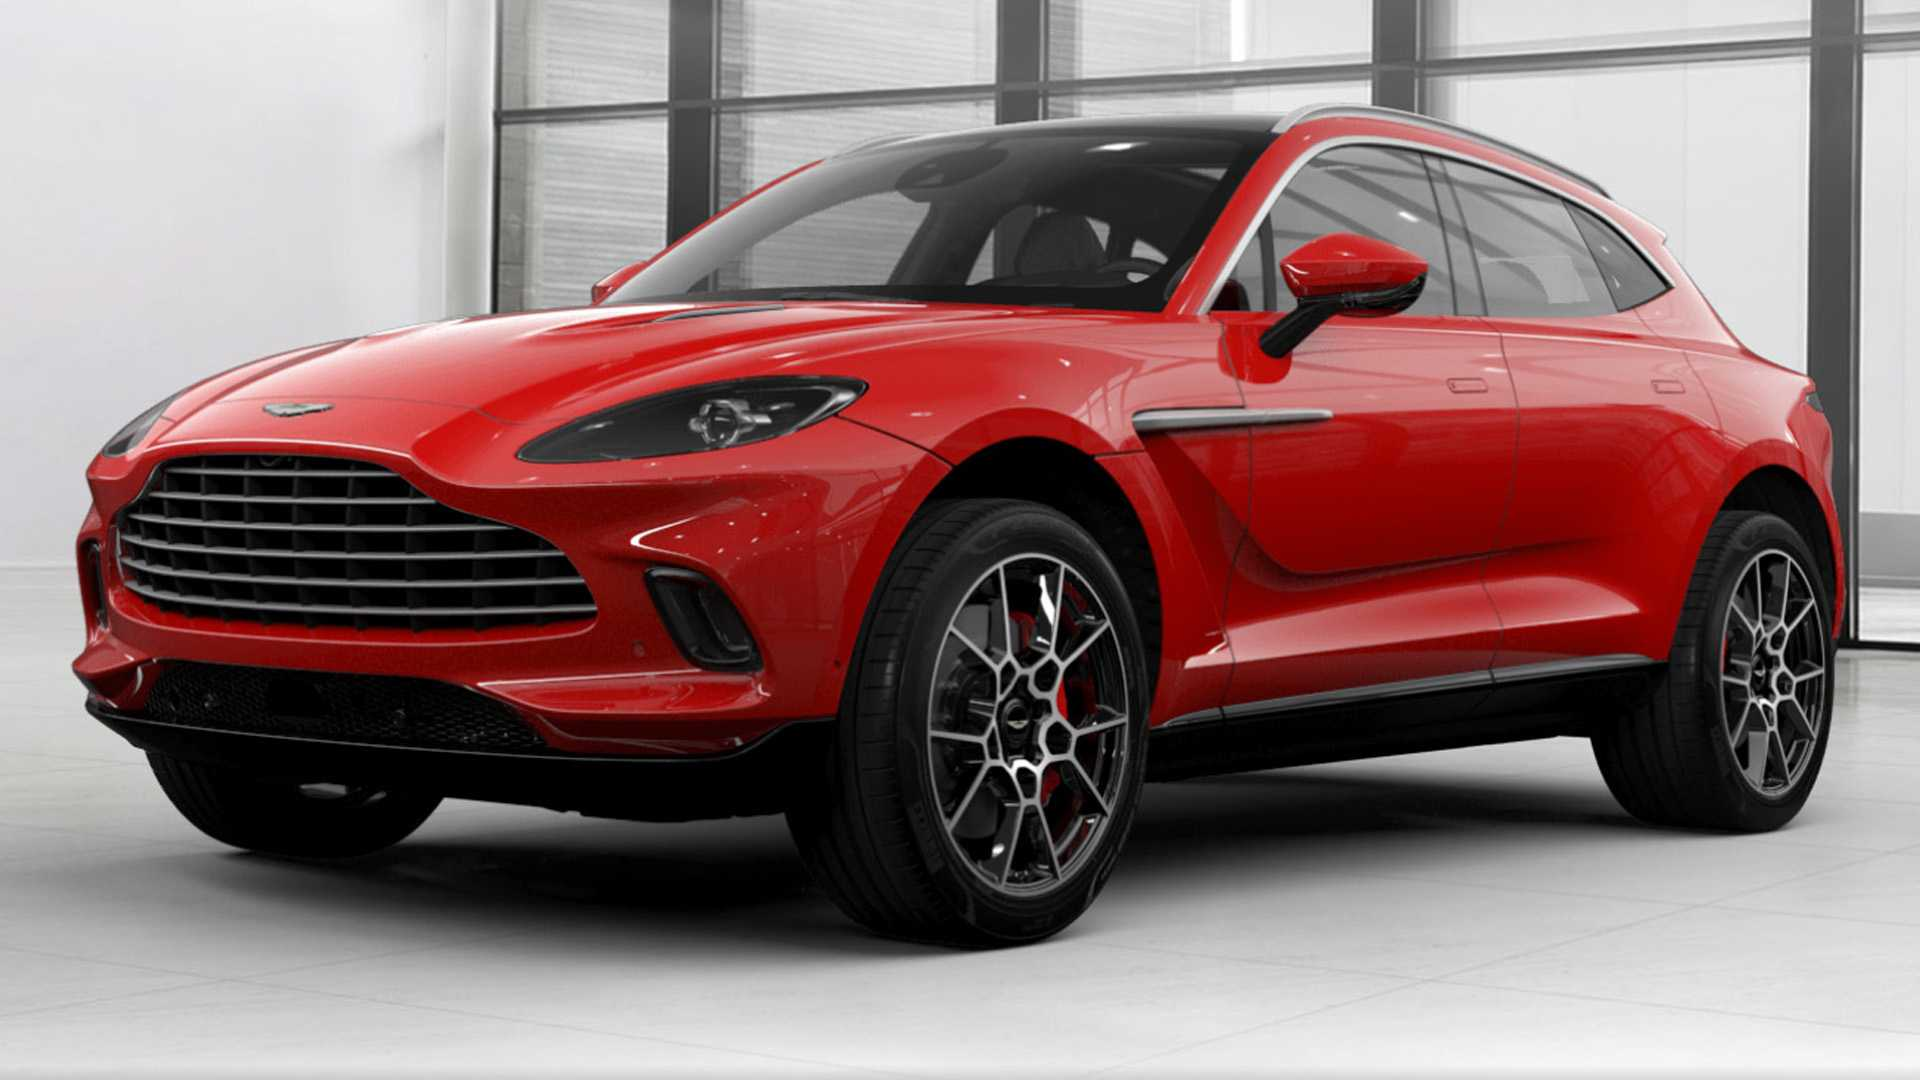 2021 Aston Martin Dbx Configurator Is Up Here S Our Posh Suv Build